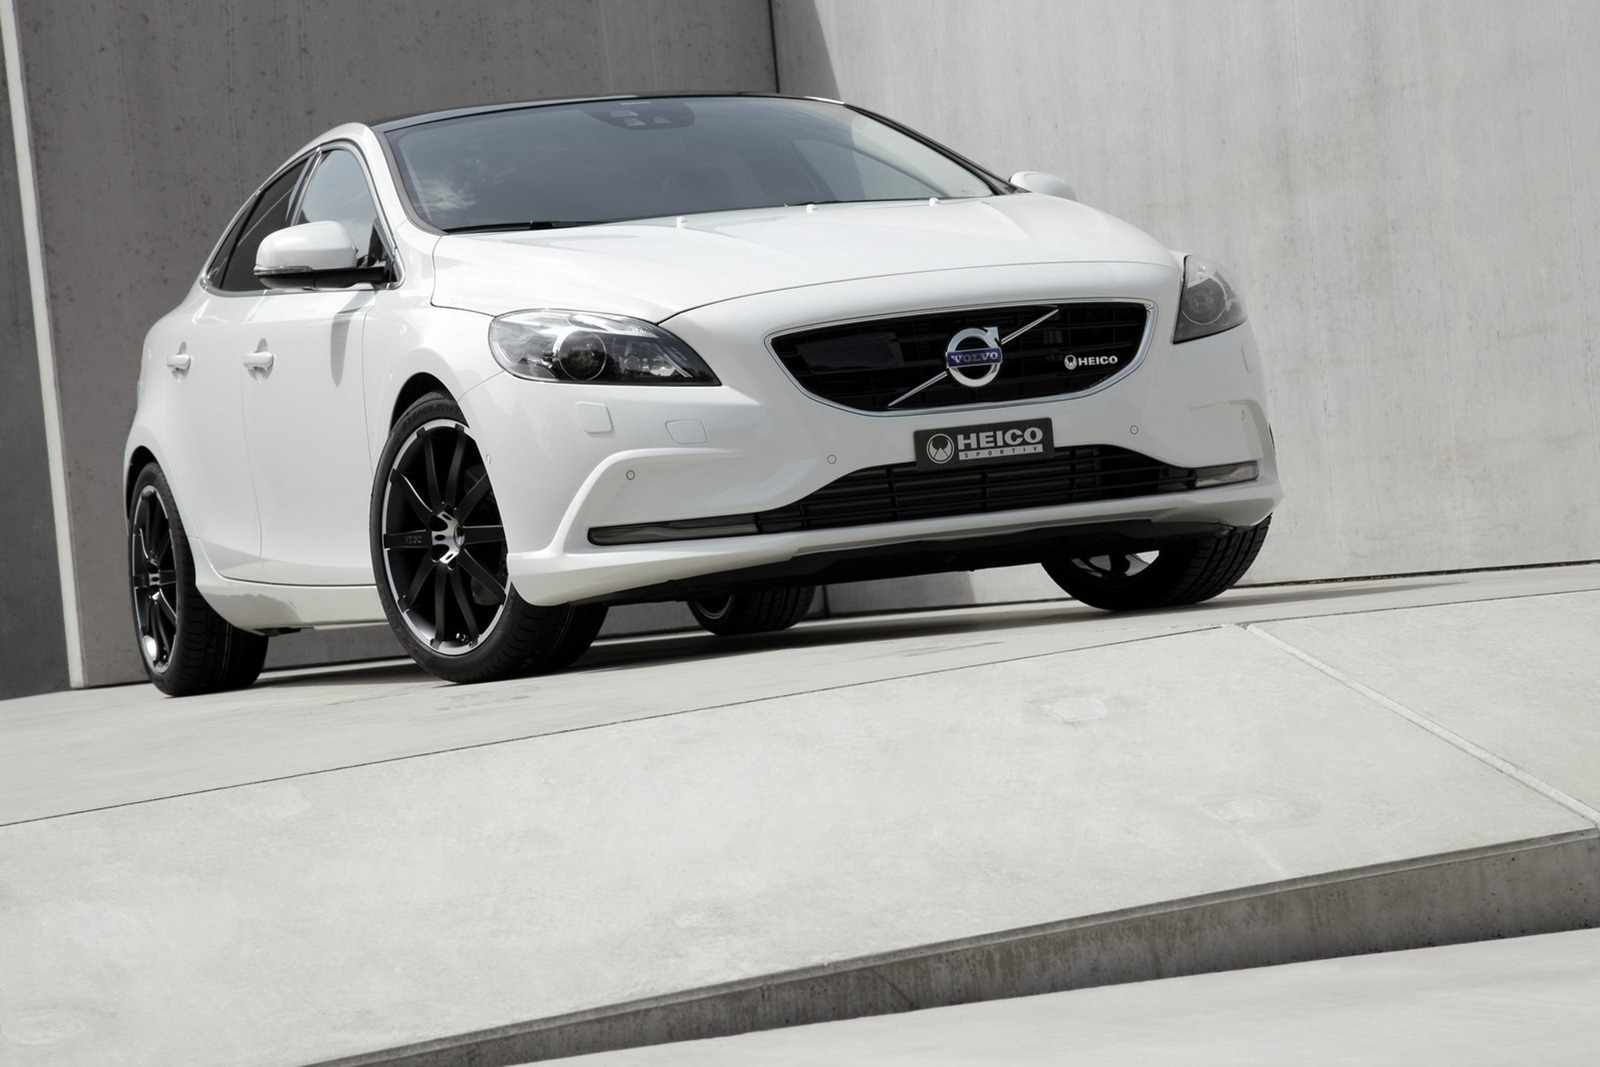 Volvo V40 gets a tuning pack from Heico Sportiv